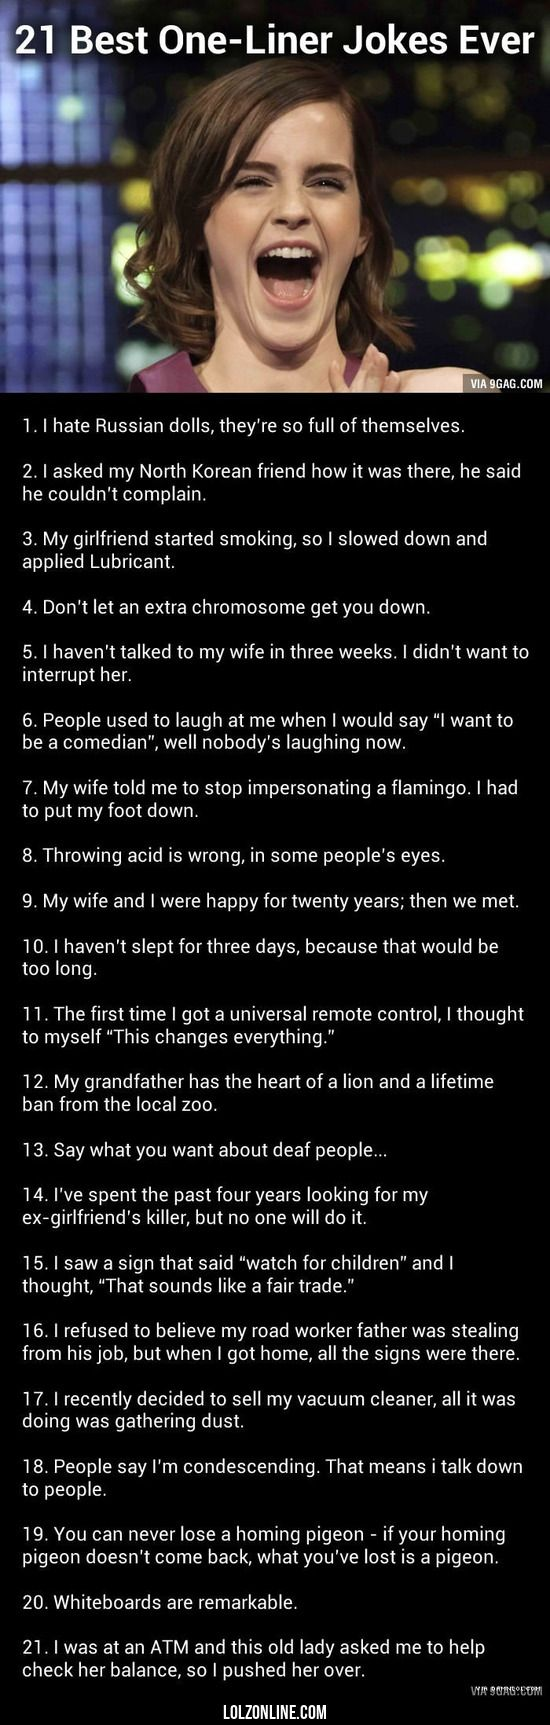 A Few Good One Liners#funny #lol #lolzonline